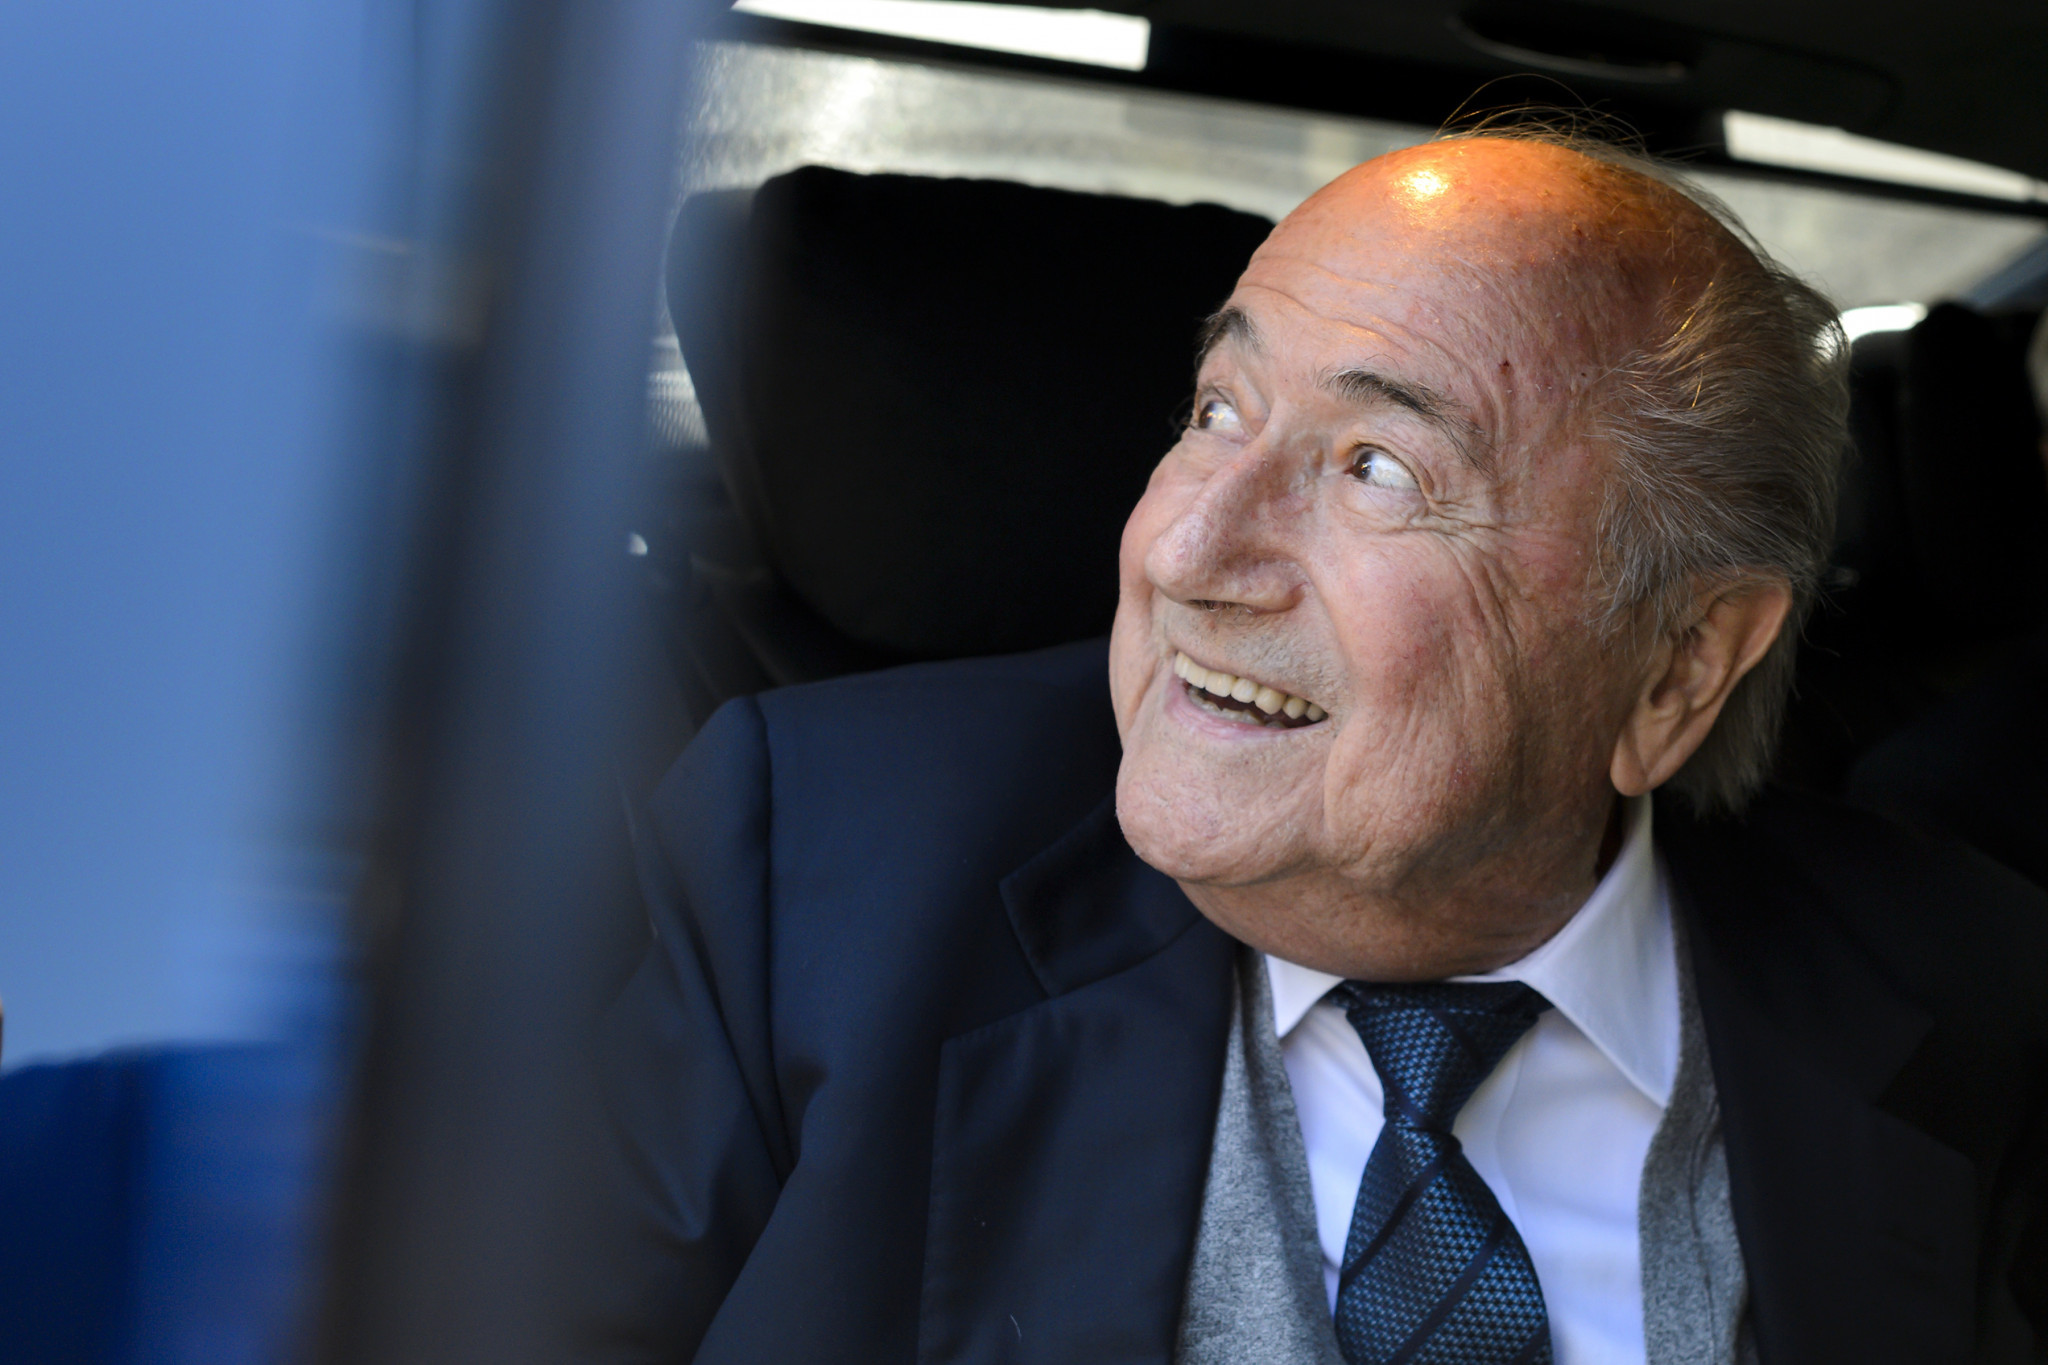 Sepp Blatter is serving a six year ban from all soccer-related duties imposed by FIFA's Ethics Committee ©Getty Images